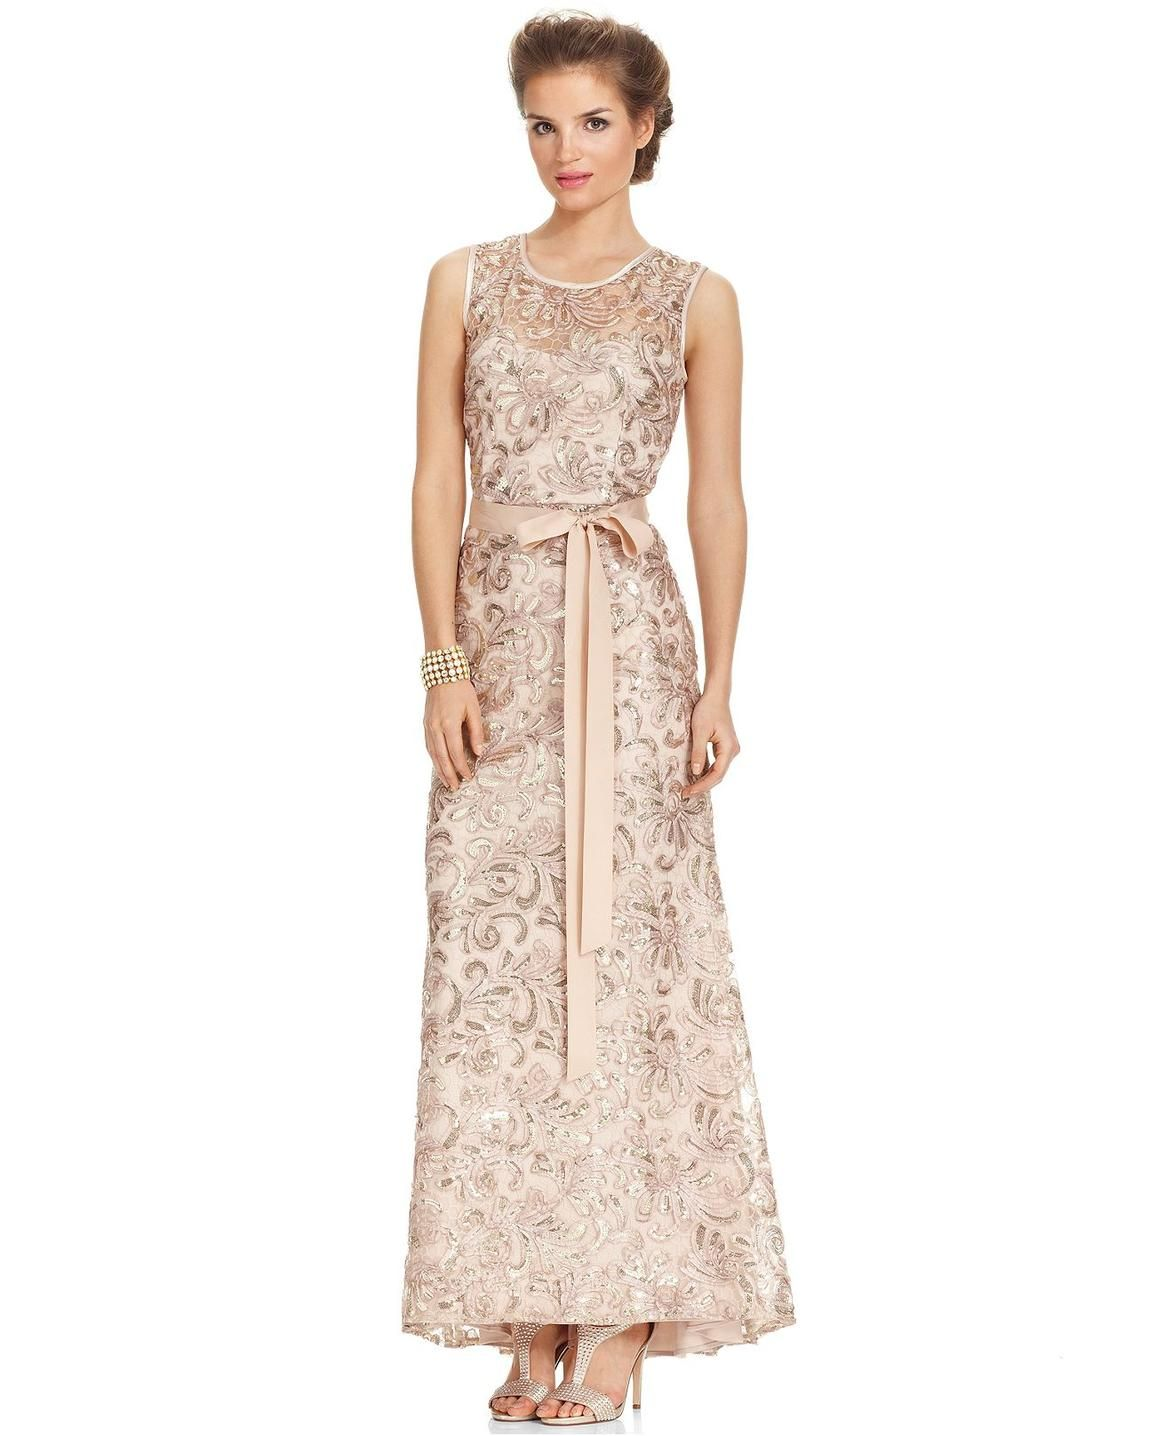 Betsy & Adam Petite Sleeveless Sequined Gown http://picvpic.com ...